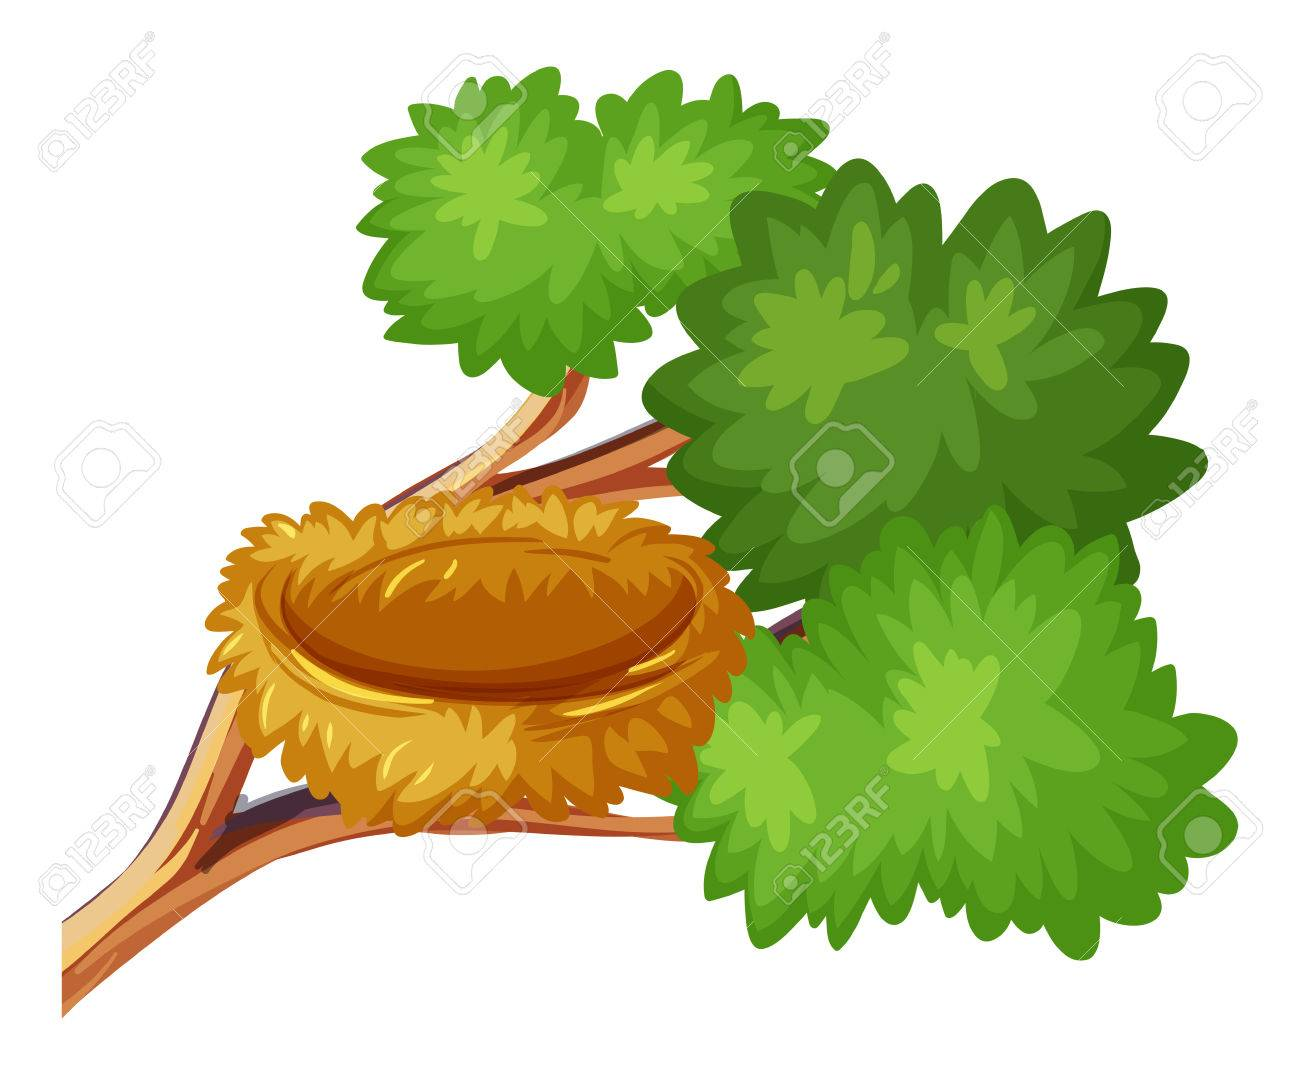 Bird Nest On The Branch Illustration Royalty Free Cliparts Vectors